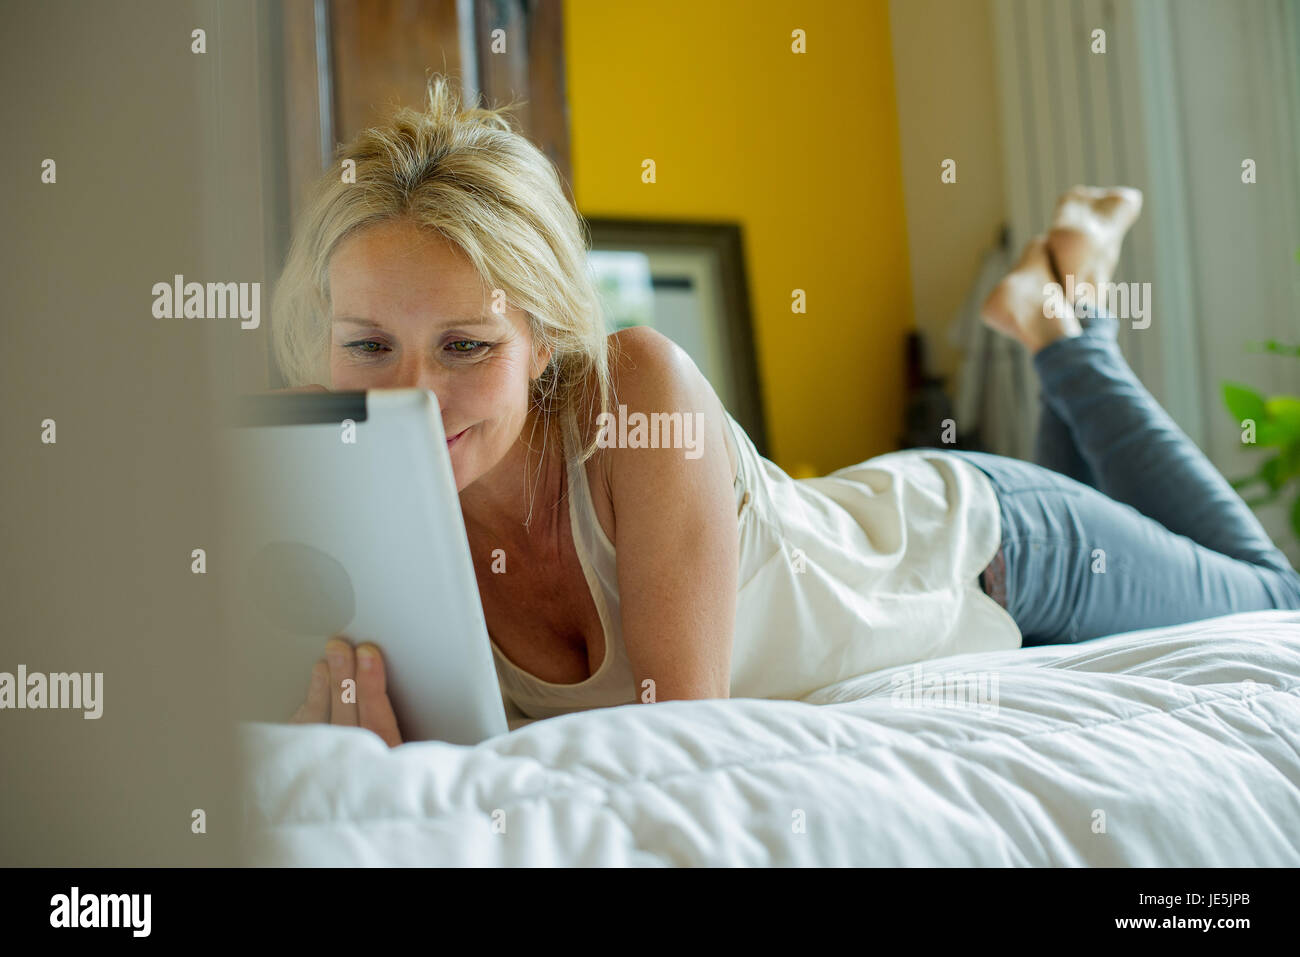 Mature woman lying on bed watching digital tablet - Stock Image